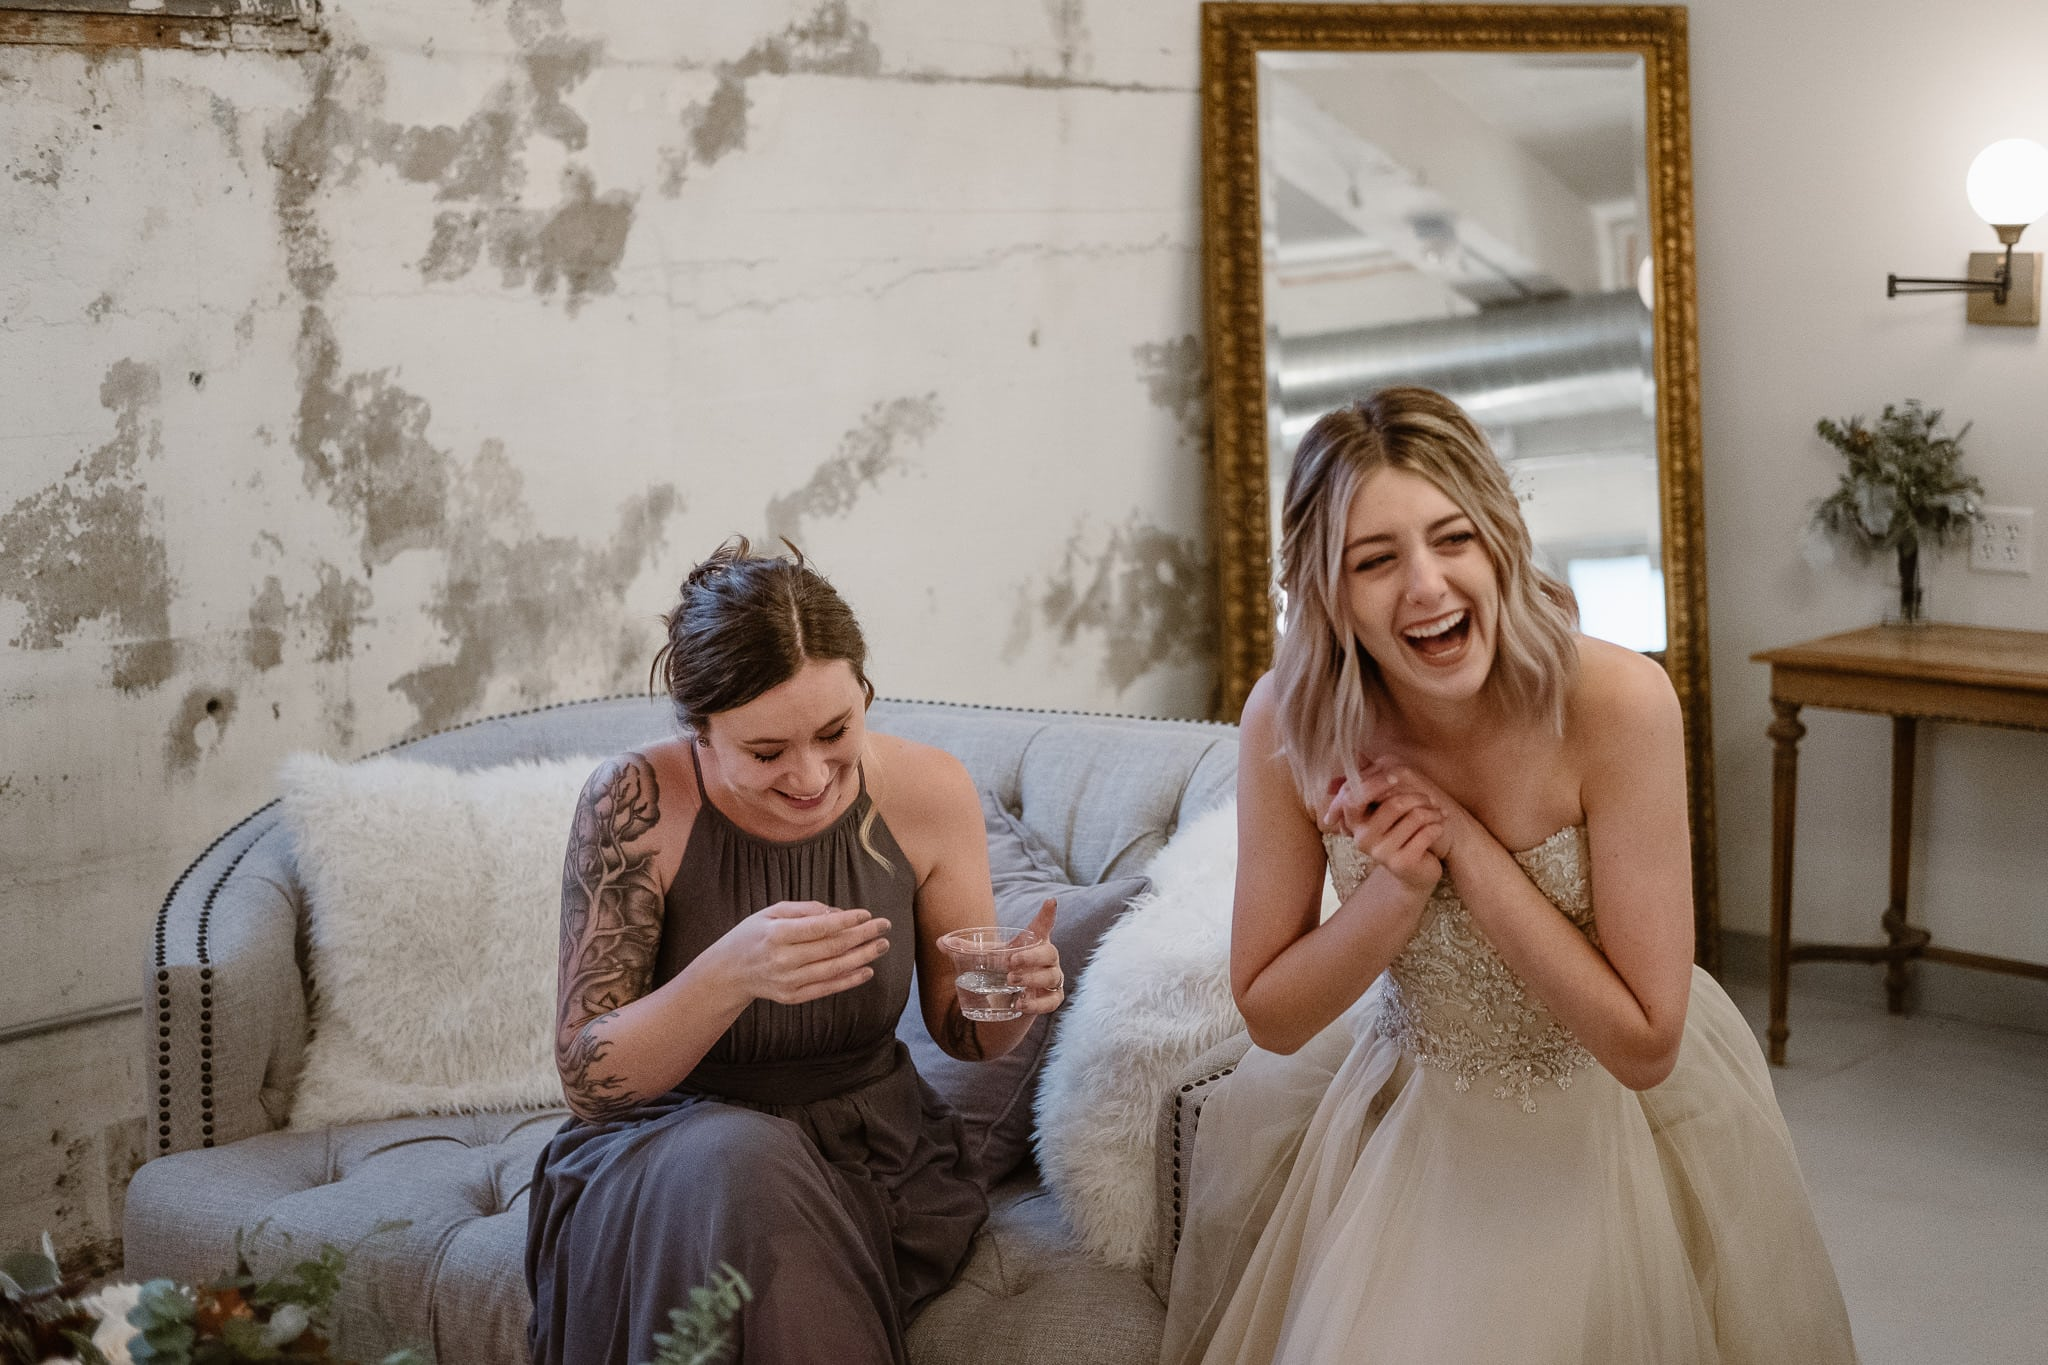 St Vrain Wedding Photographer | Longmont Wedding Photographer | Colorado Winter Wedding Photographer, Colorado industrial chic wedding, bride and bridesmaid crying and laughing